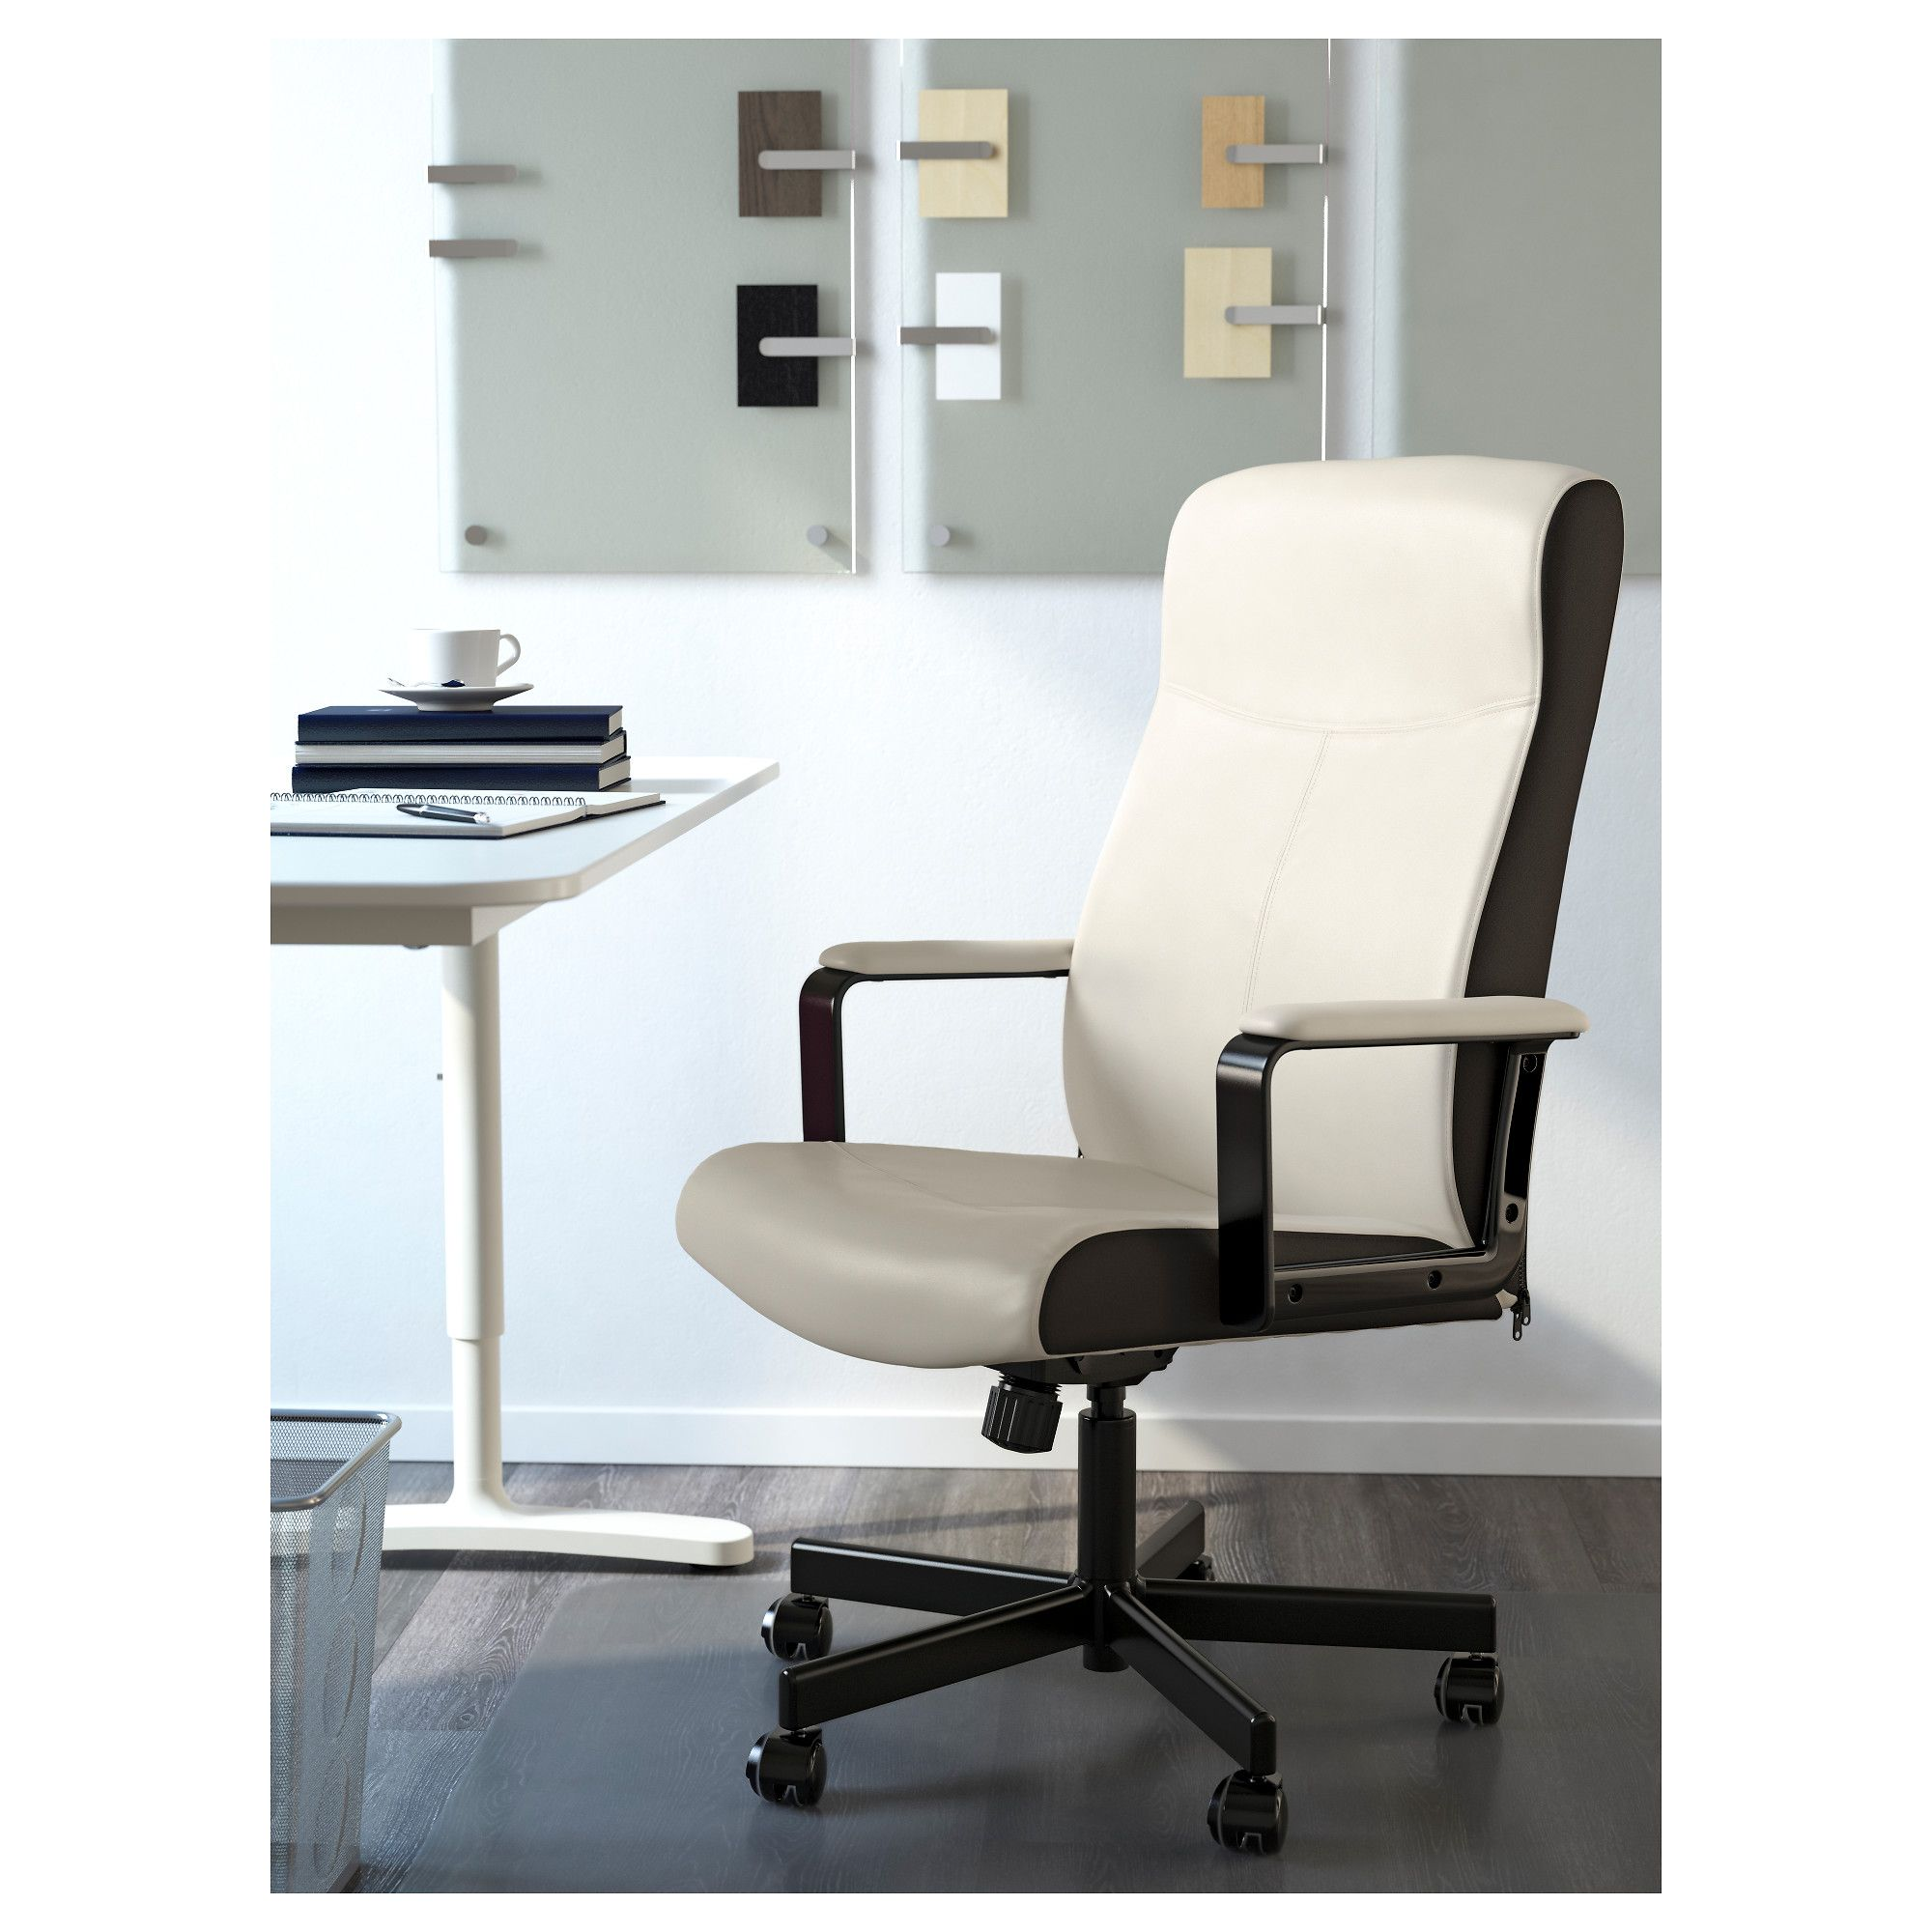 swivel chair office warehouse tub accent ikea millberget kimstad white products pinterest